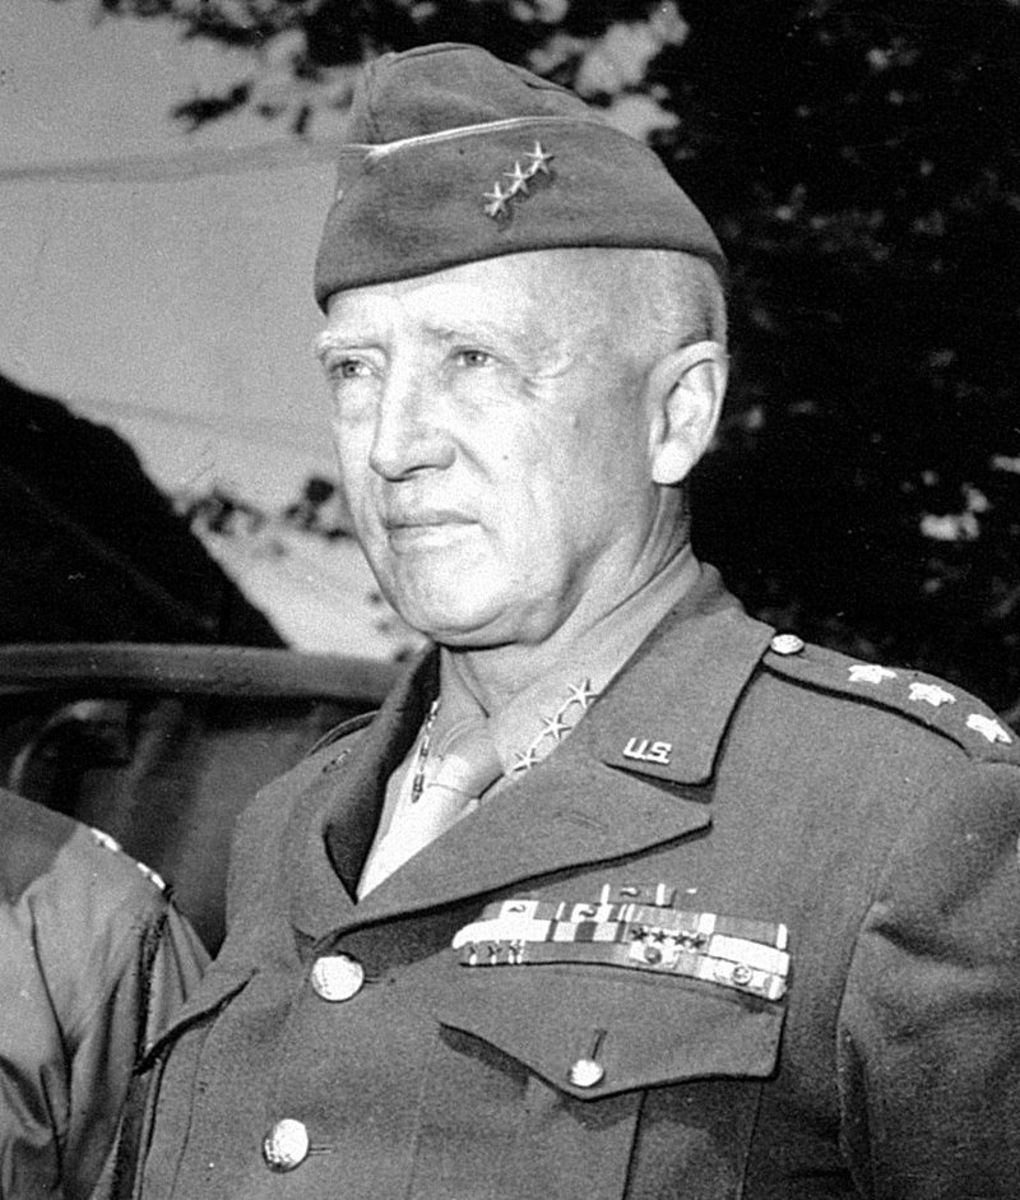 George S Patton would become a household name in the Untied States after the Third Army rescued of the 101st Airborne at Bastogne.